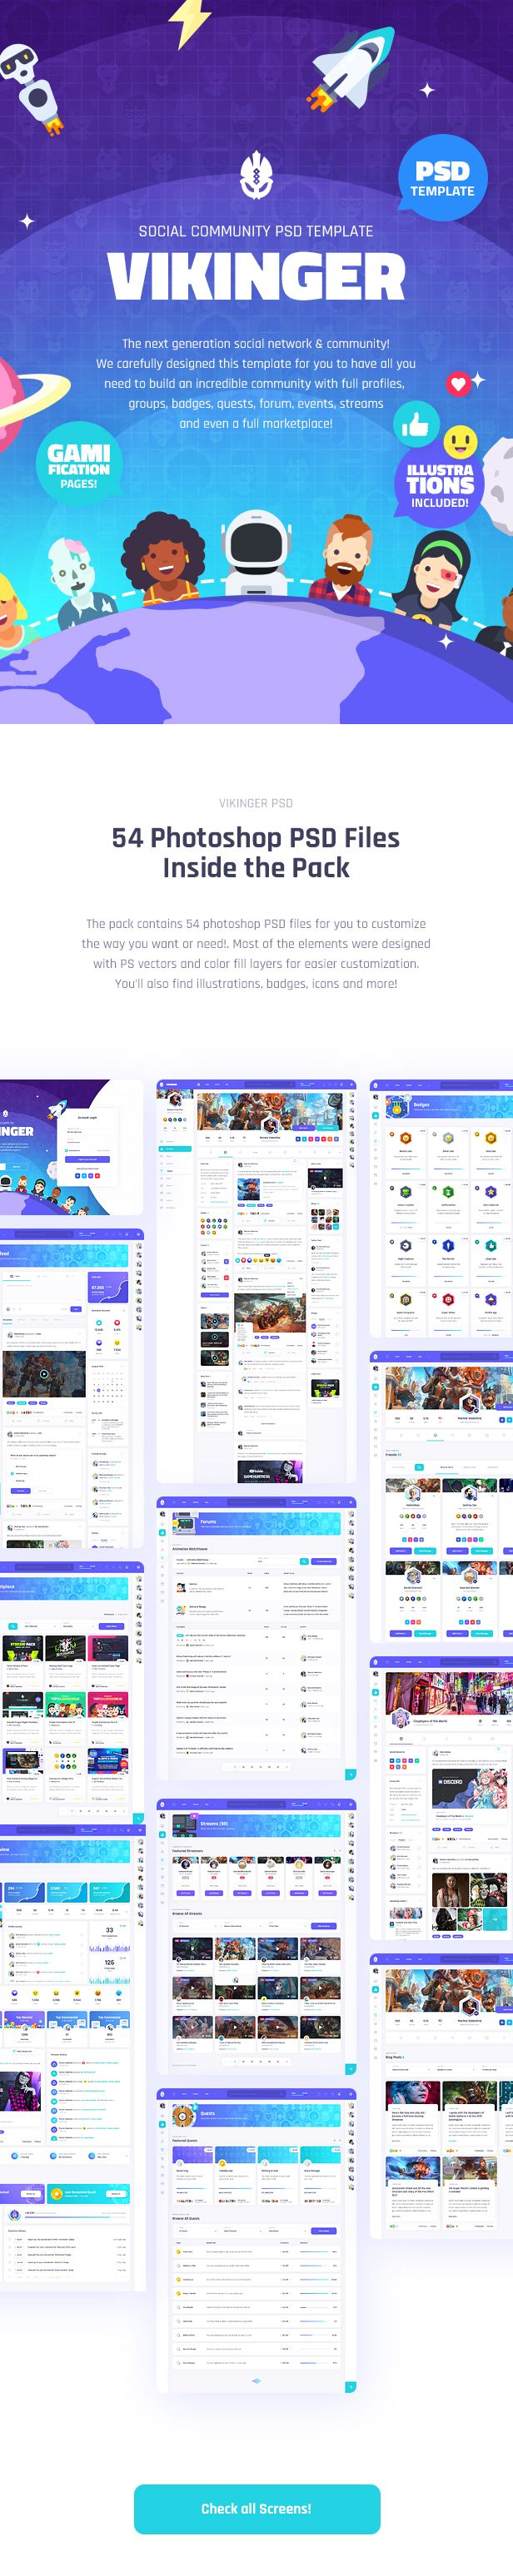 Vikinger - Social Network and Marketplace PSD Template - 10